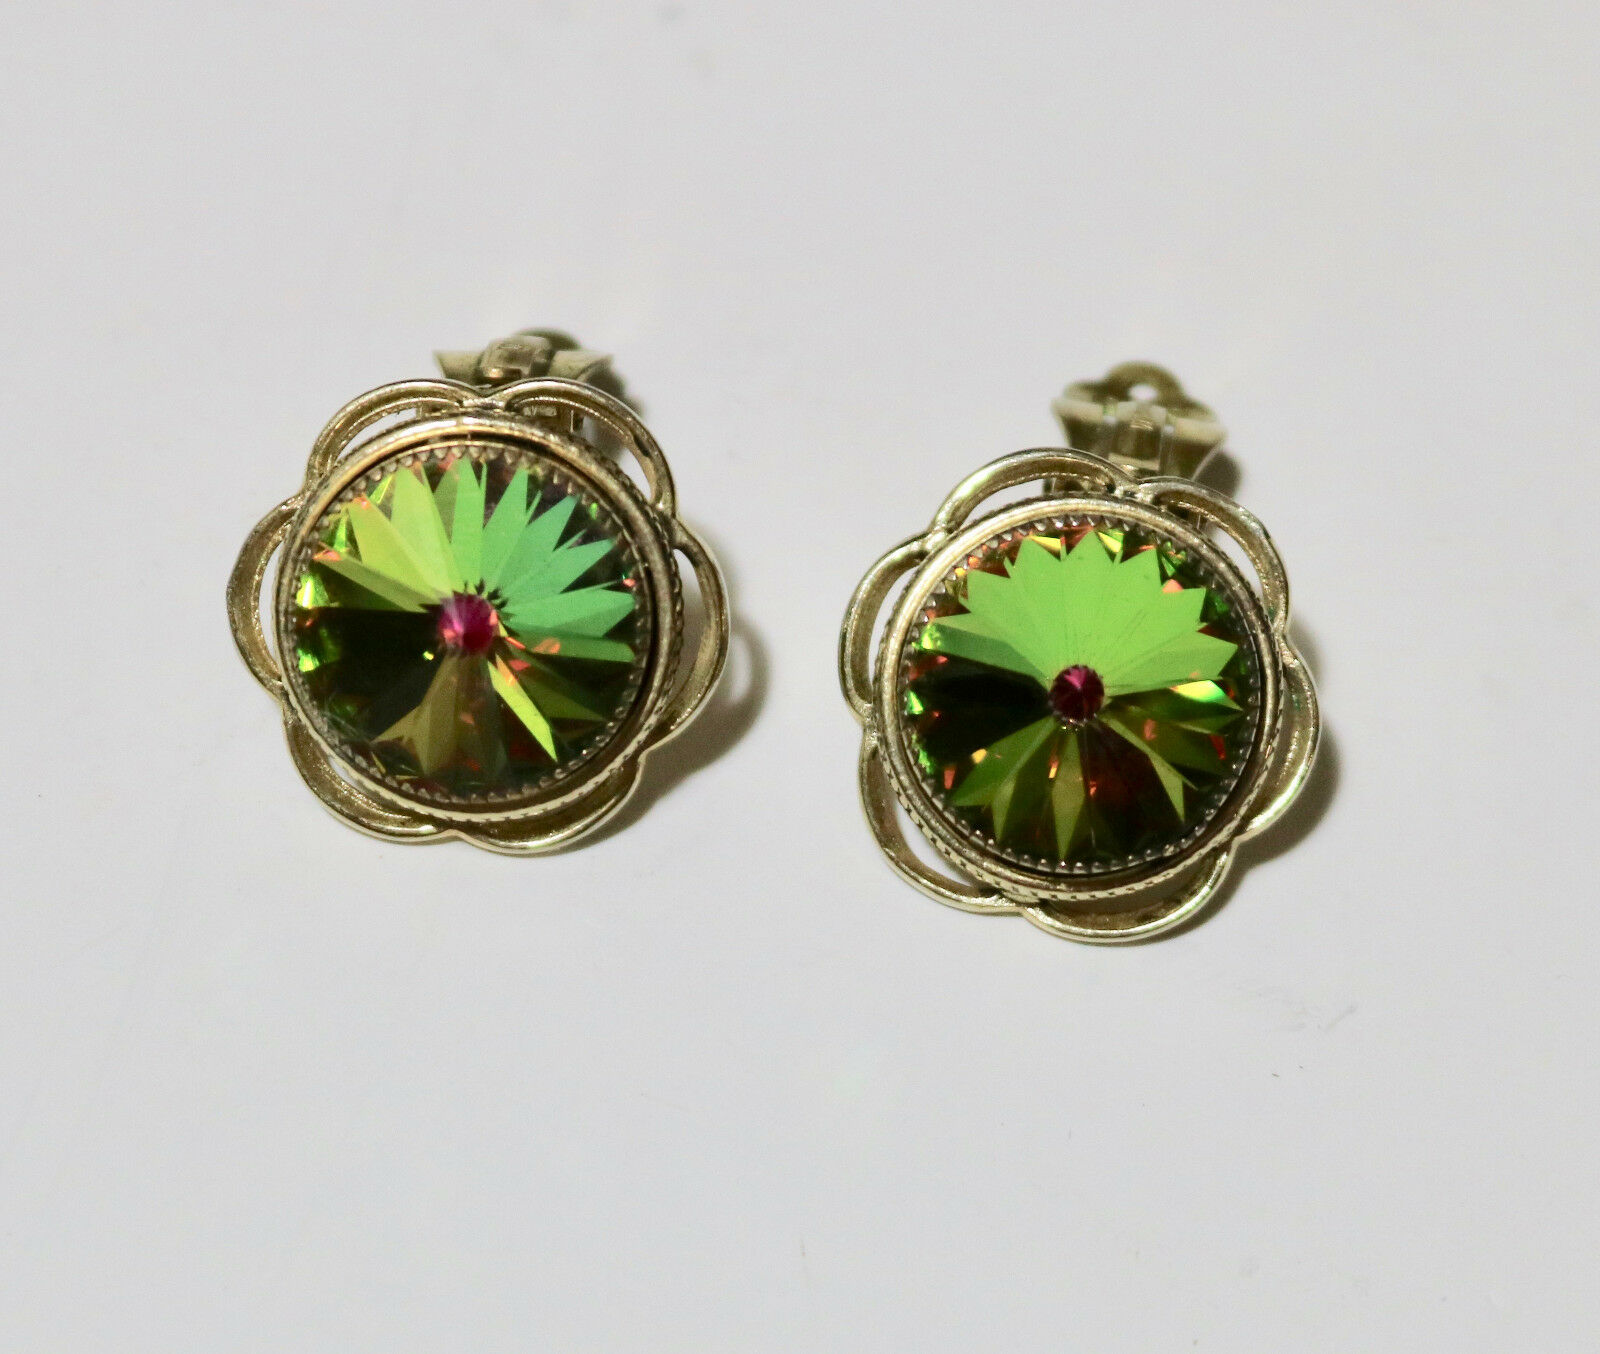 Whiting & Davis Co. vintage clip on earrings watermelon pointed stone